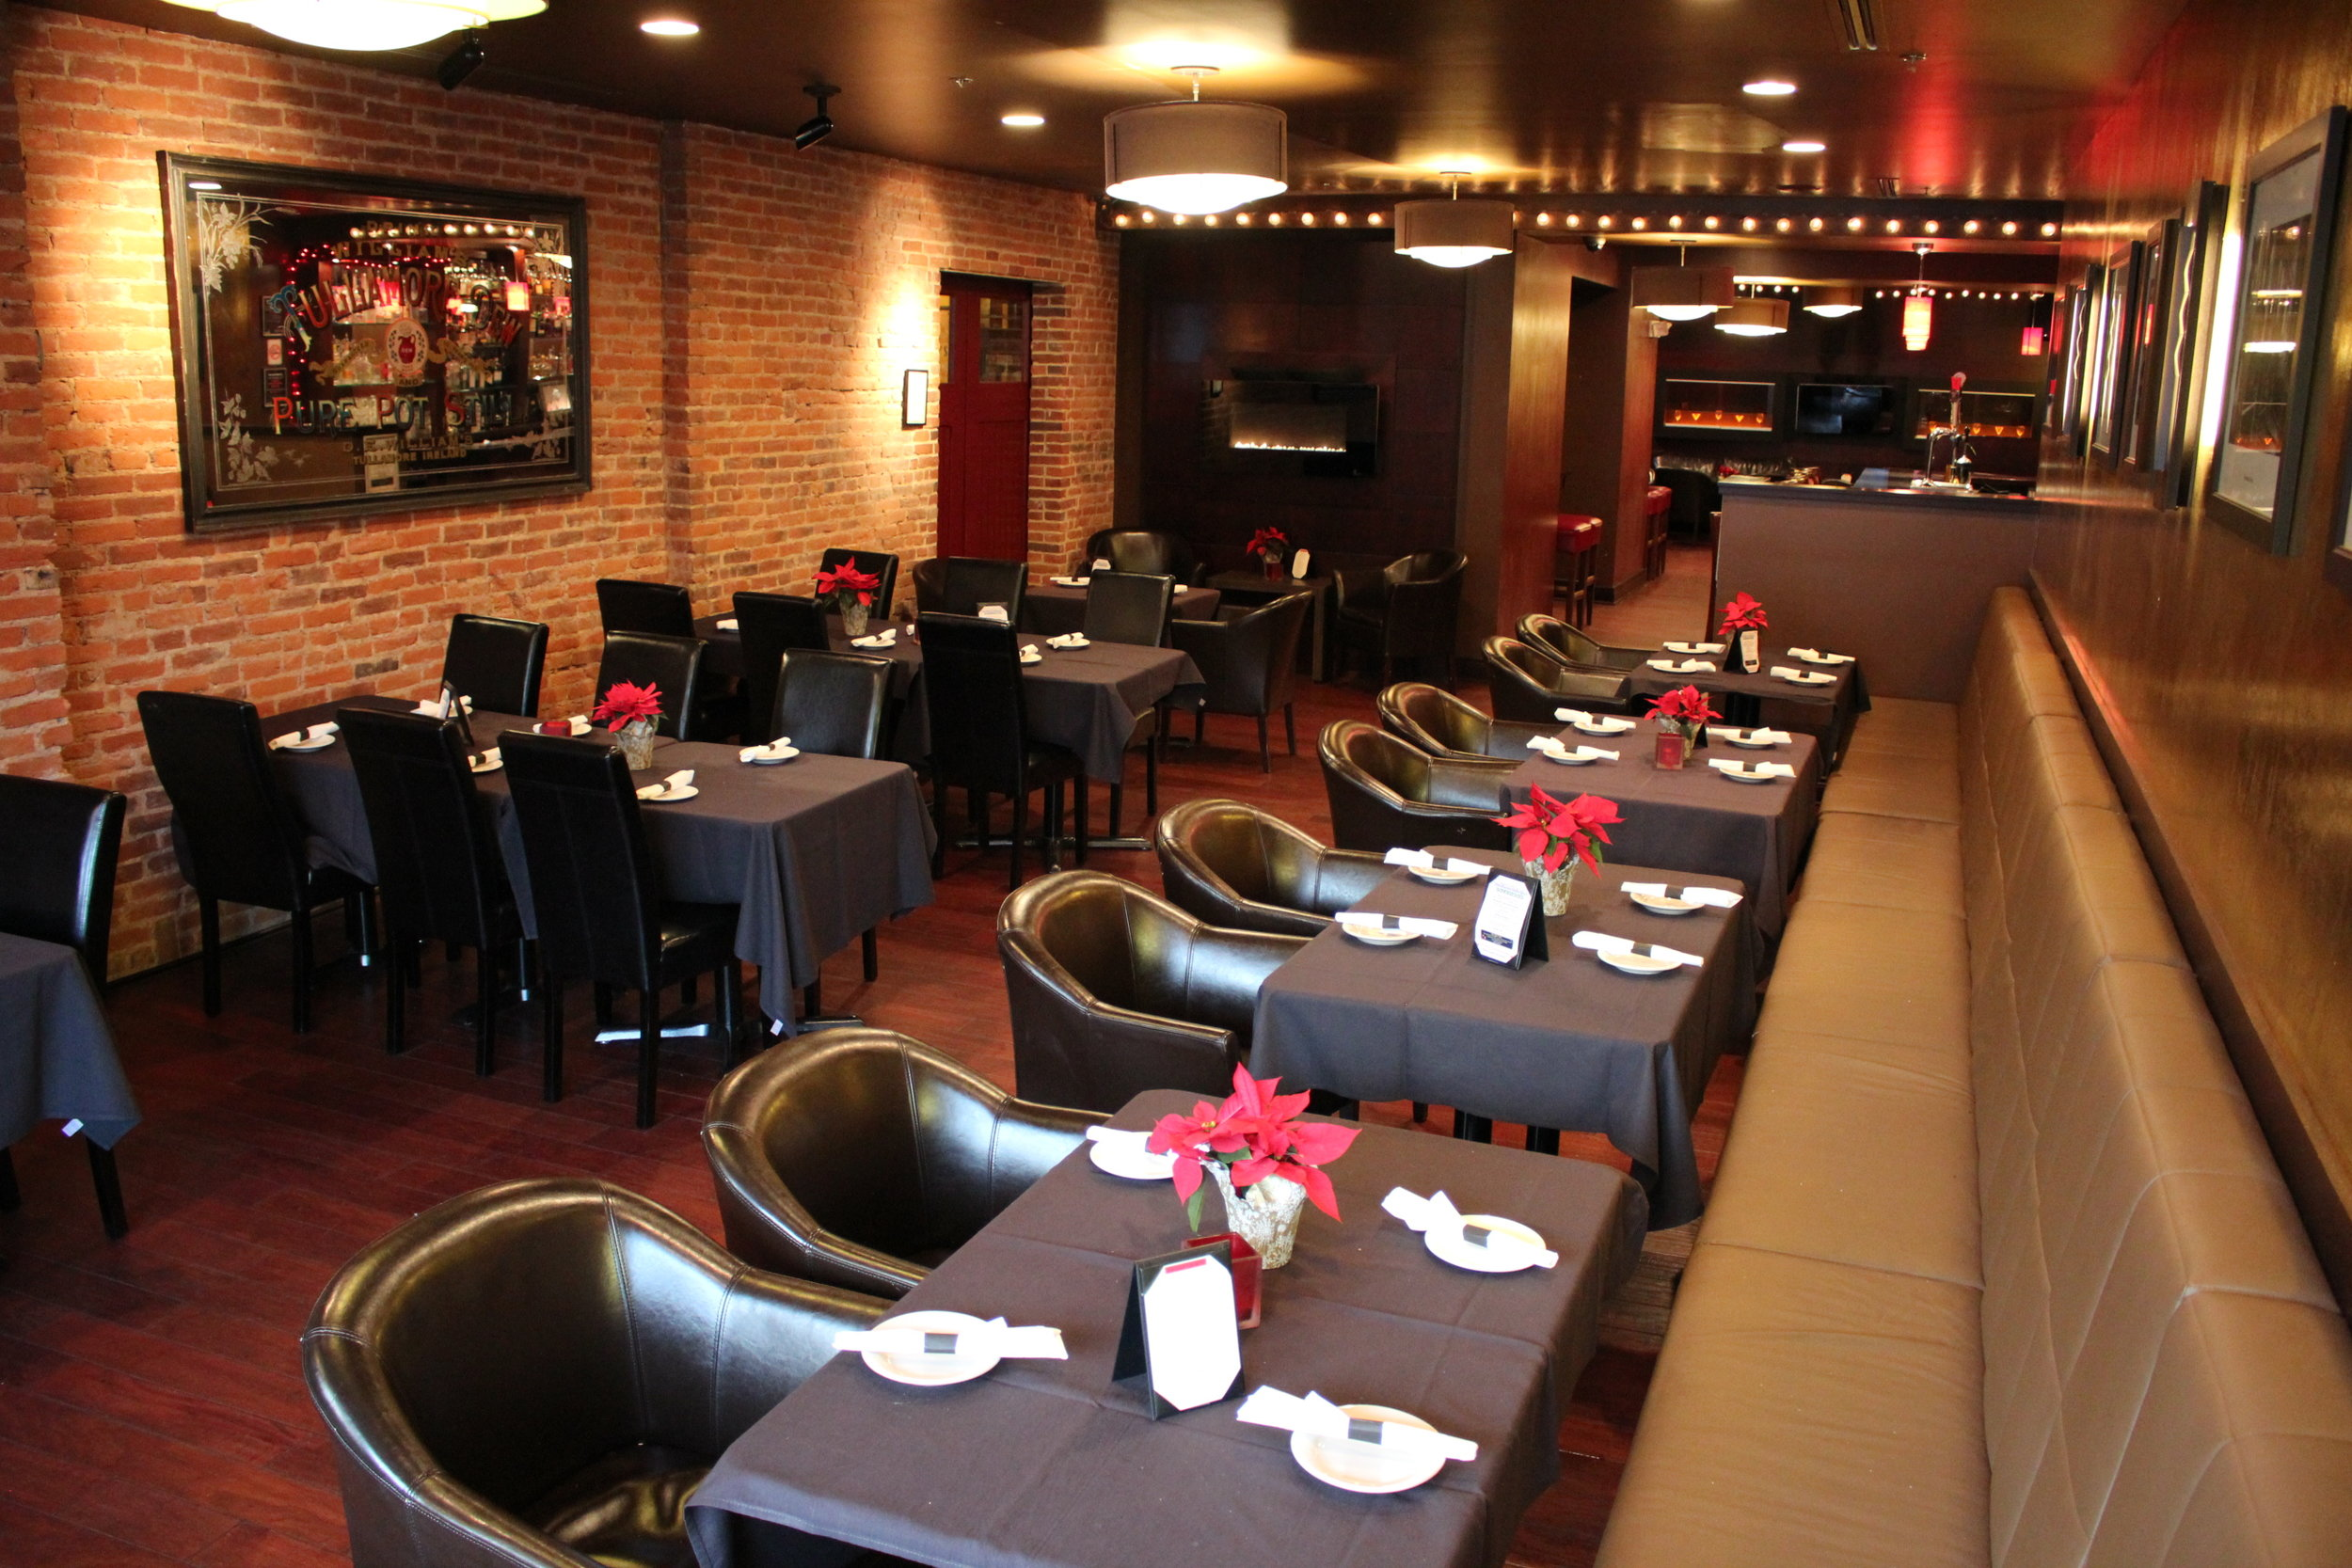 Full view of the fenix room with brick walls, brown-clothed tables and dark chairs.